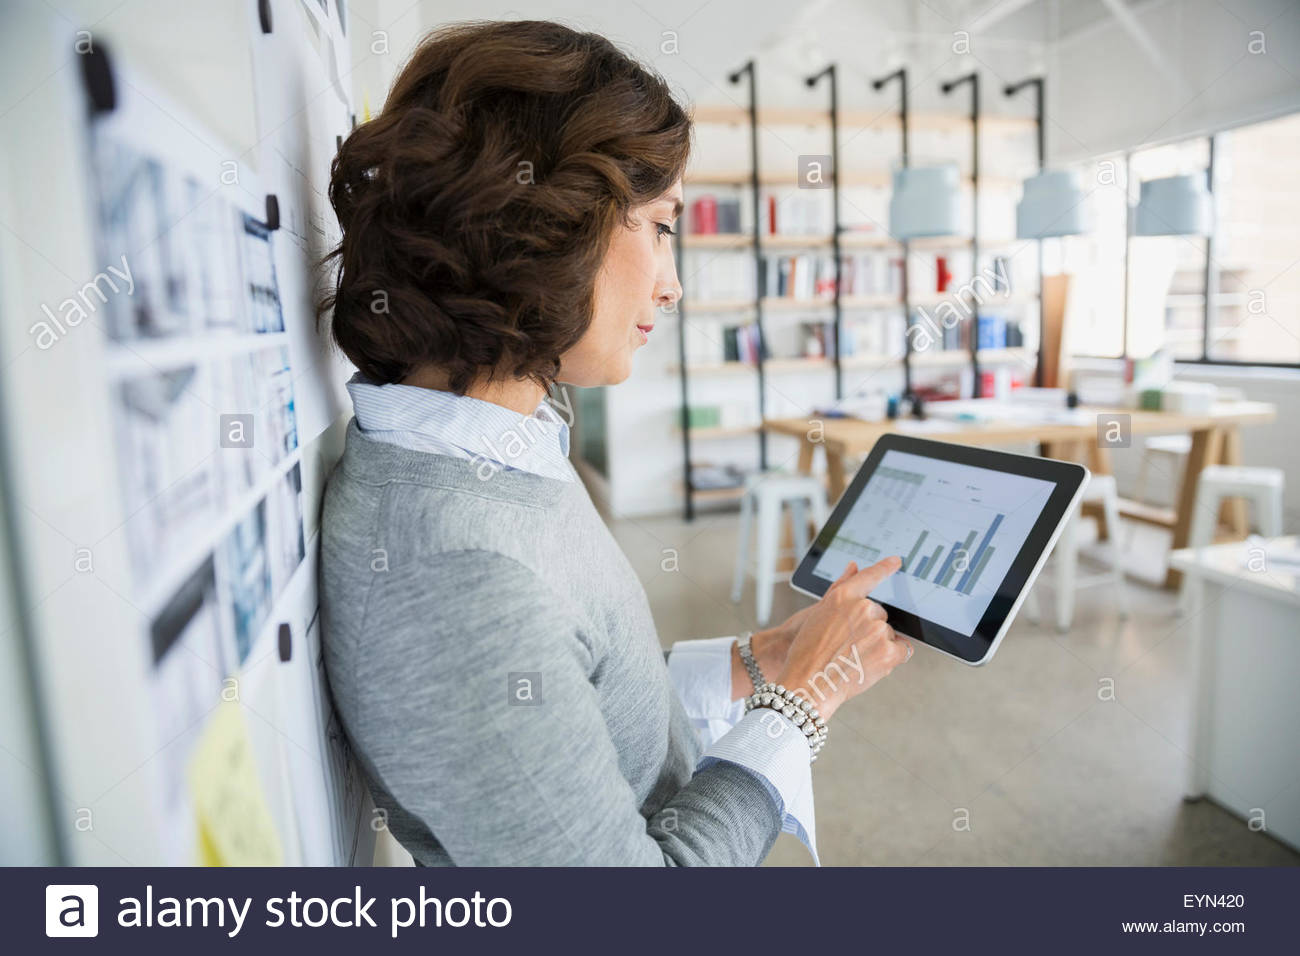 Architect viewing bar graph on digital tablet office - Stock Image